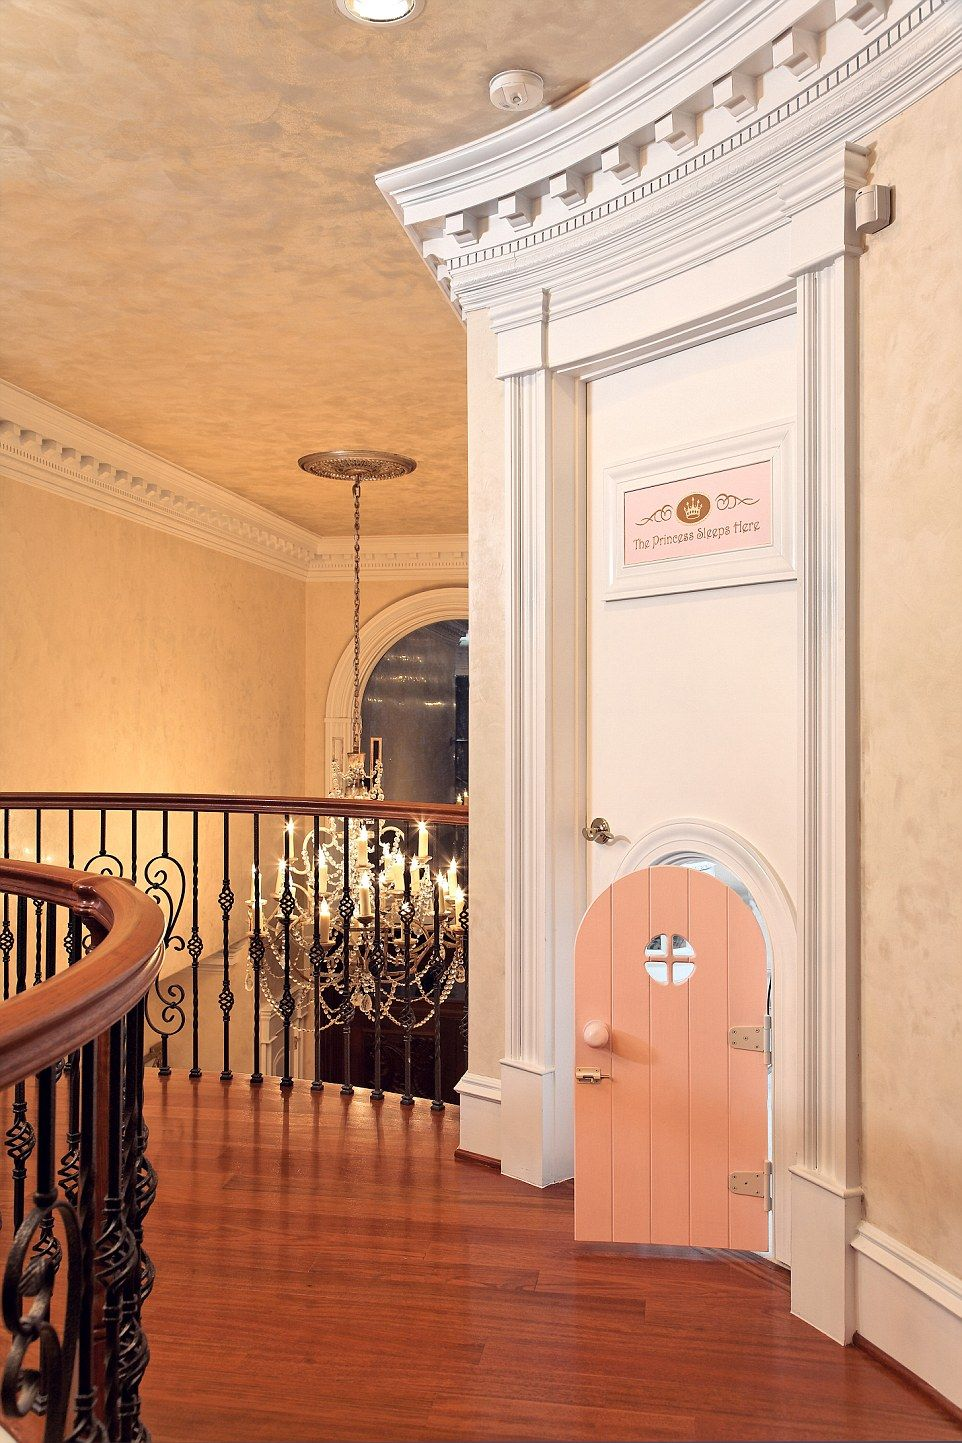 Bedroom Door Decorations Classical: The $200,000 Playrooms The World's Wealthy Are Building